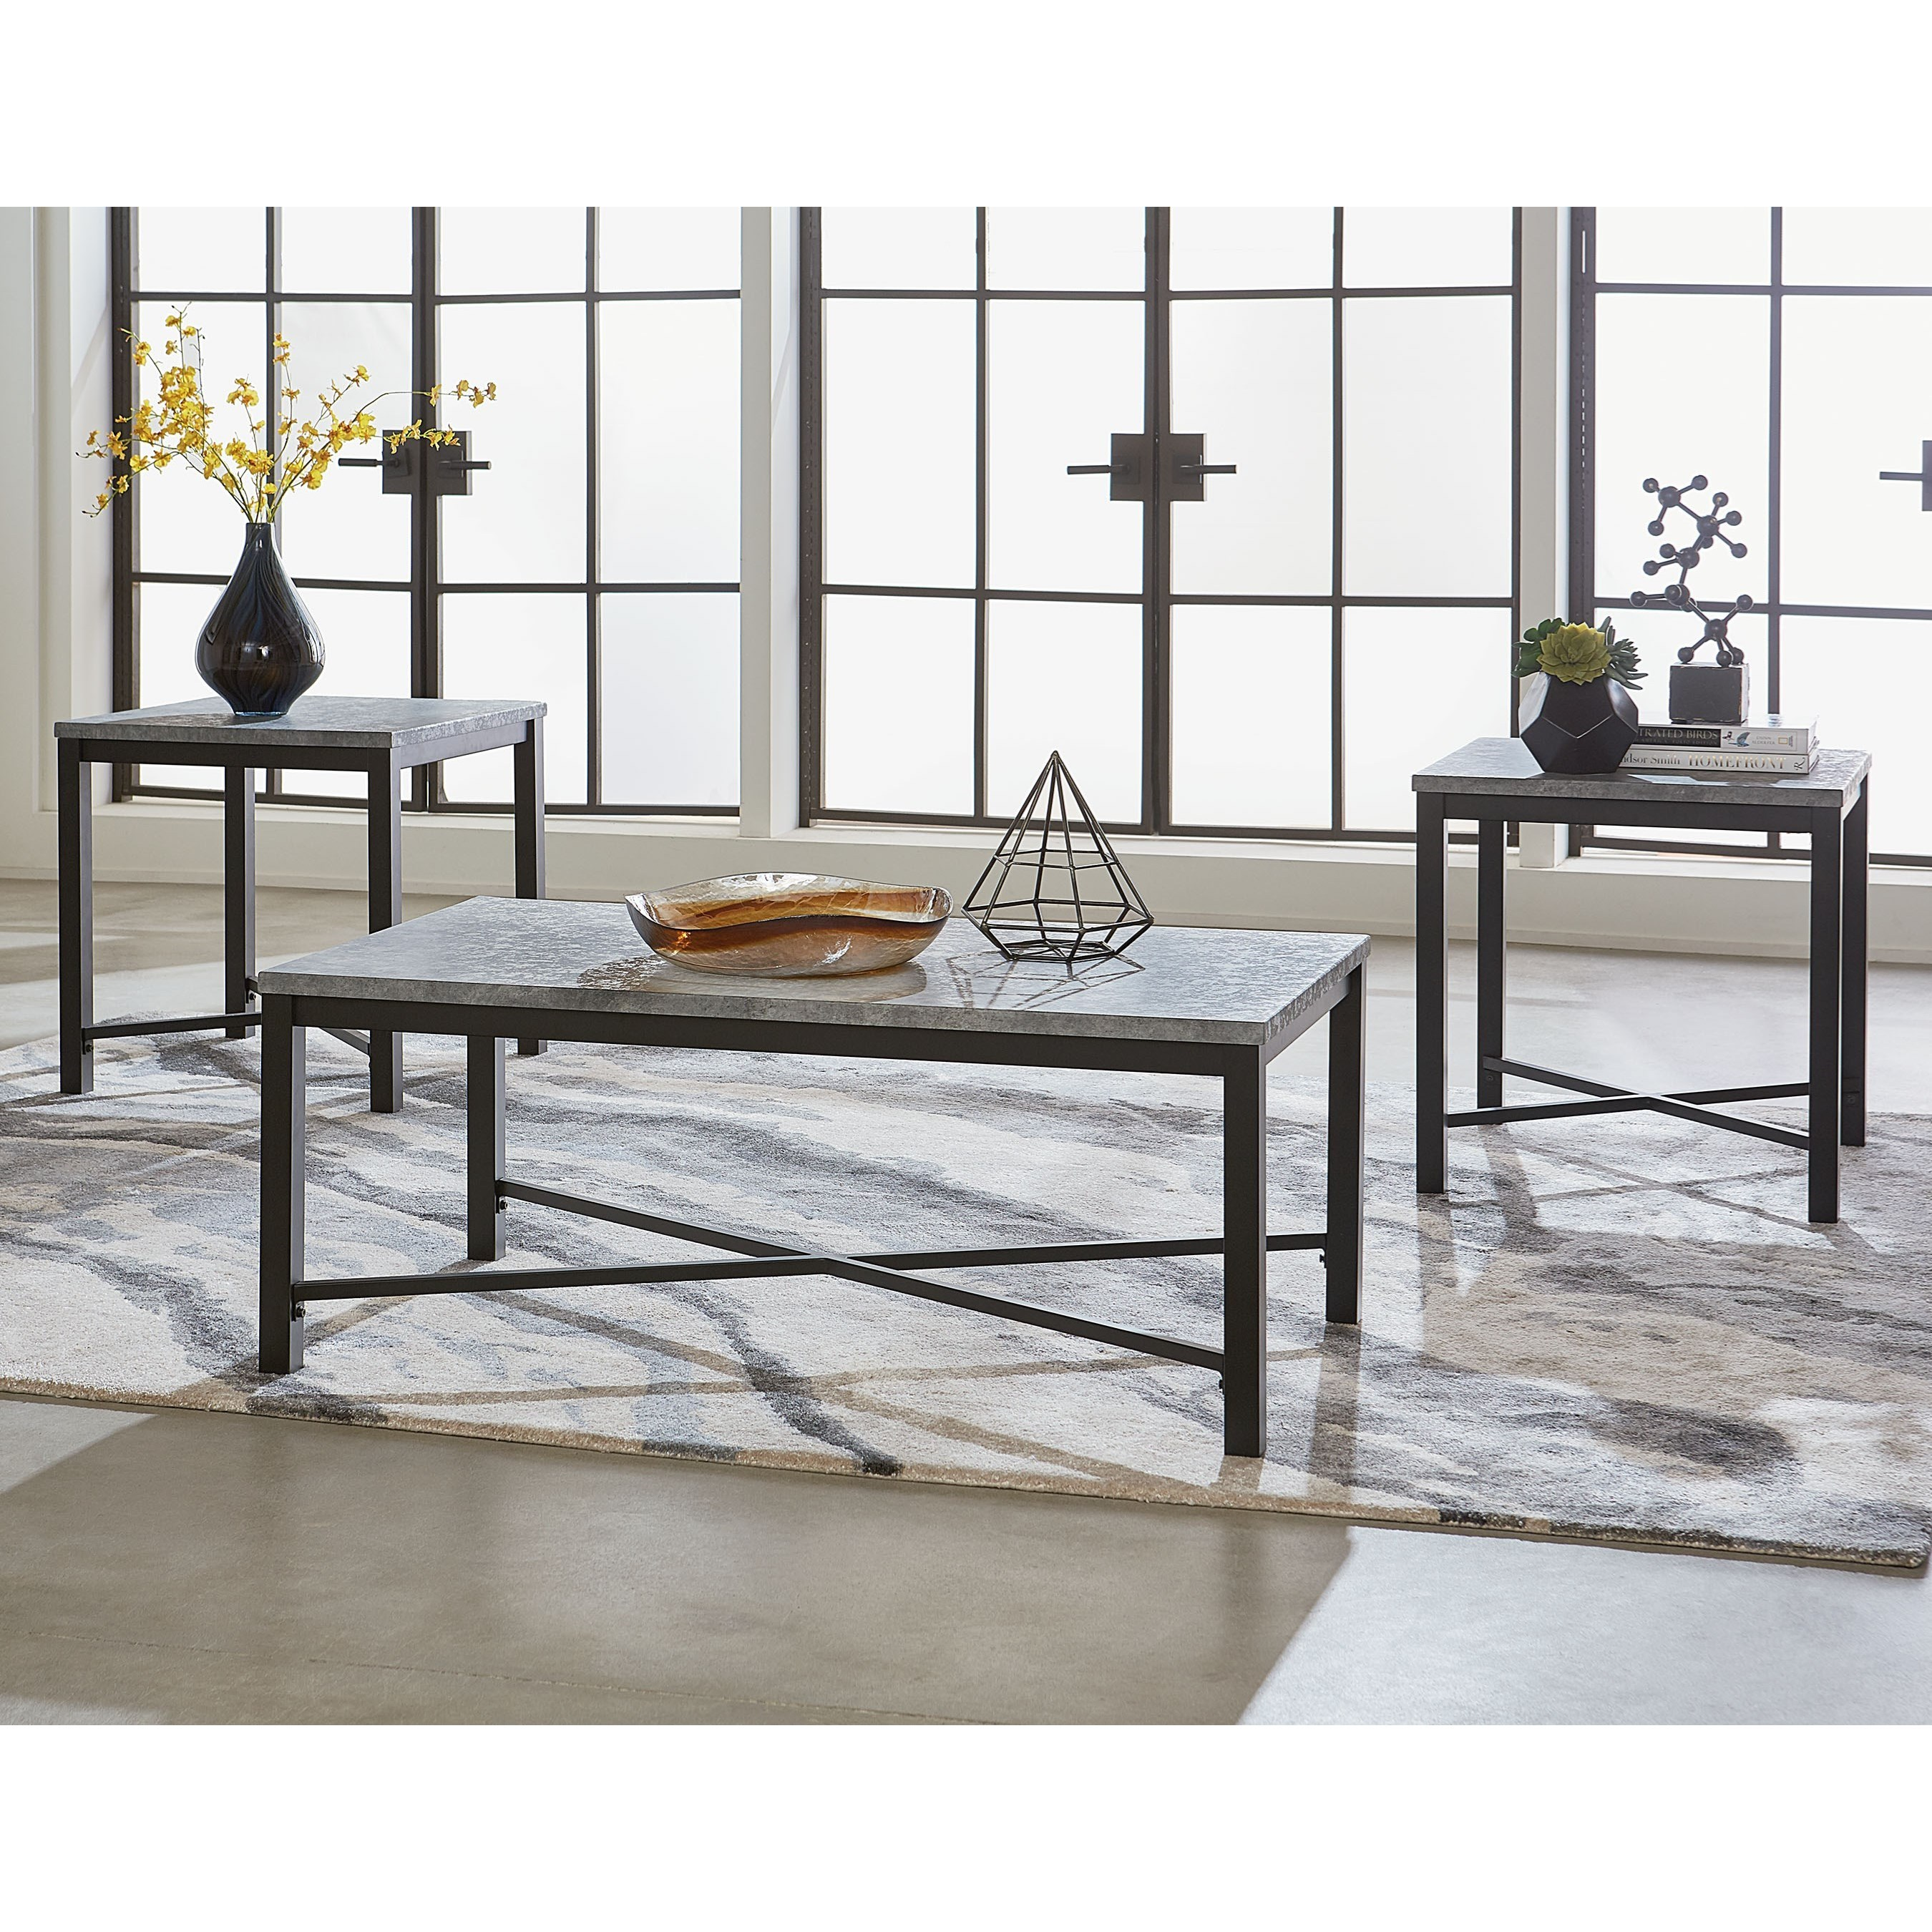 Lacrosse Occasional Table Group by Standard Furniture at Adcock Furniture